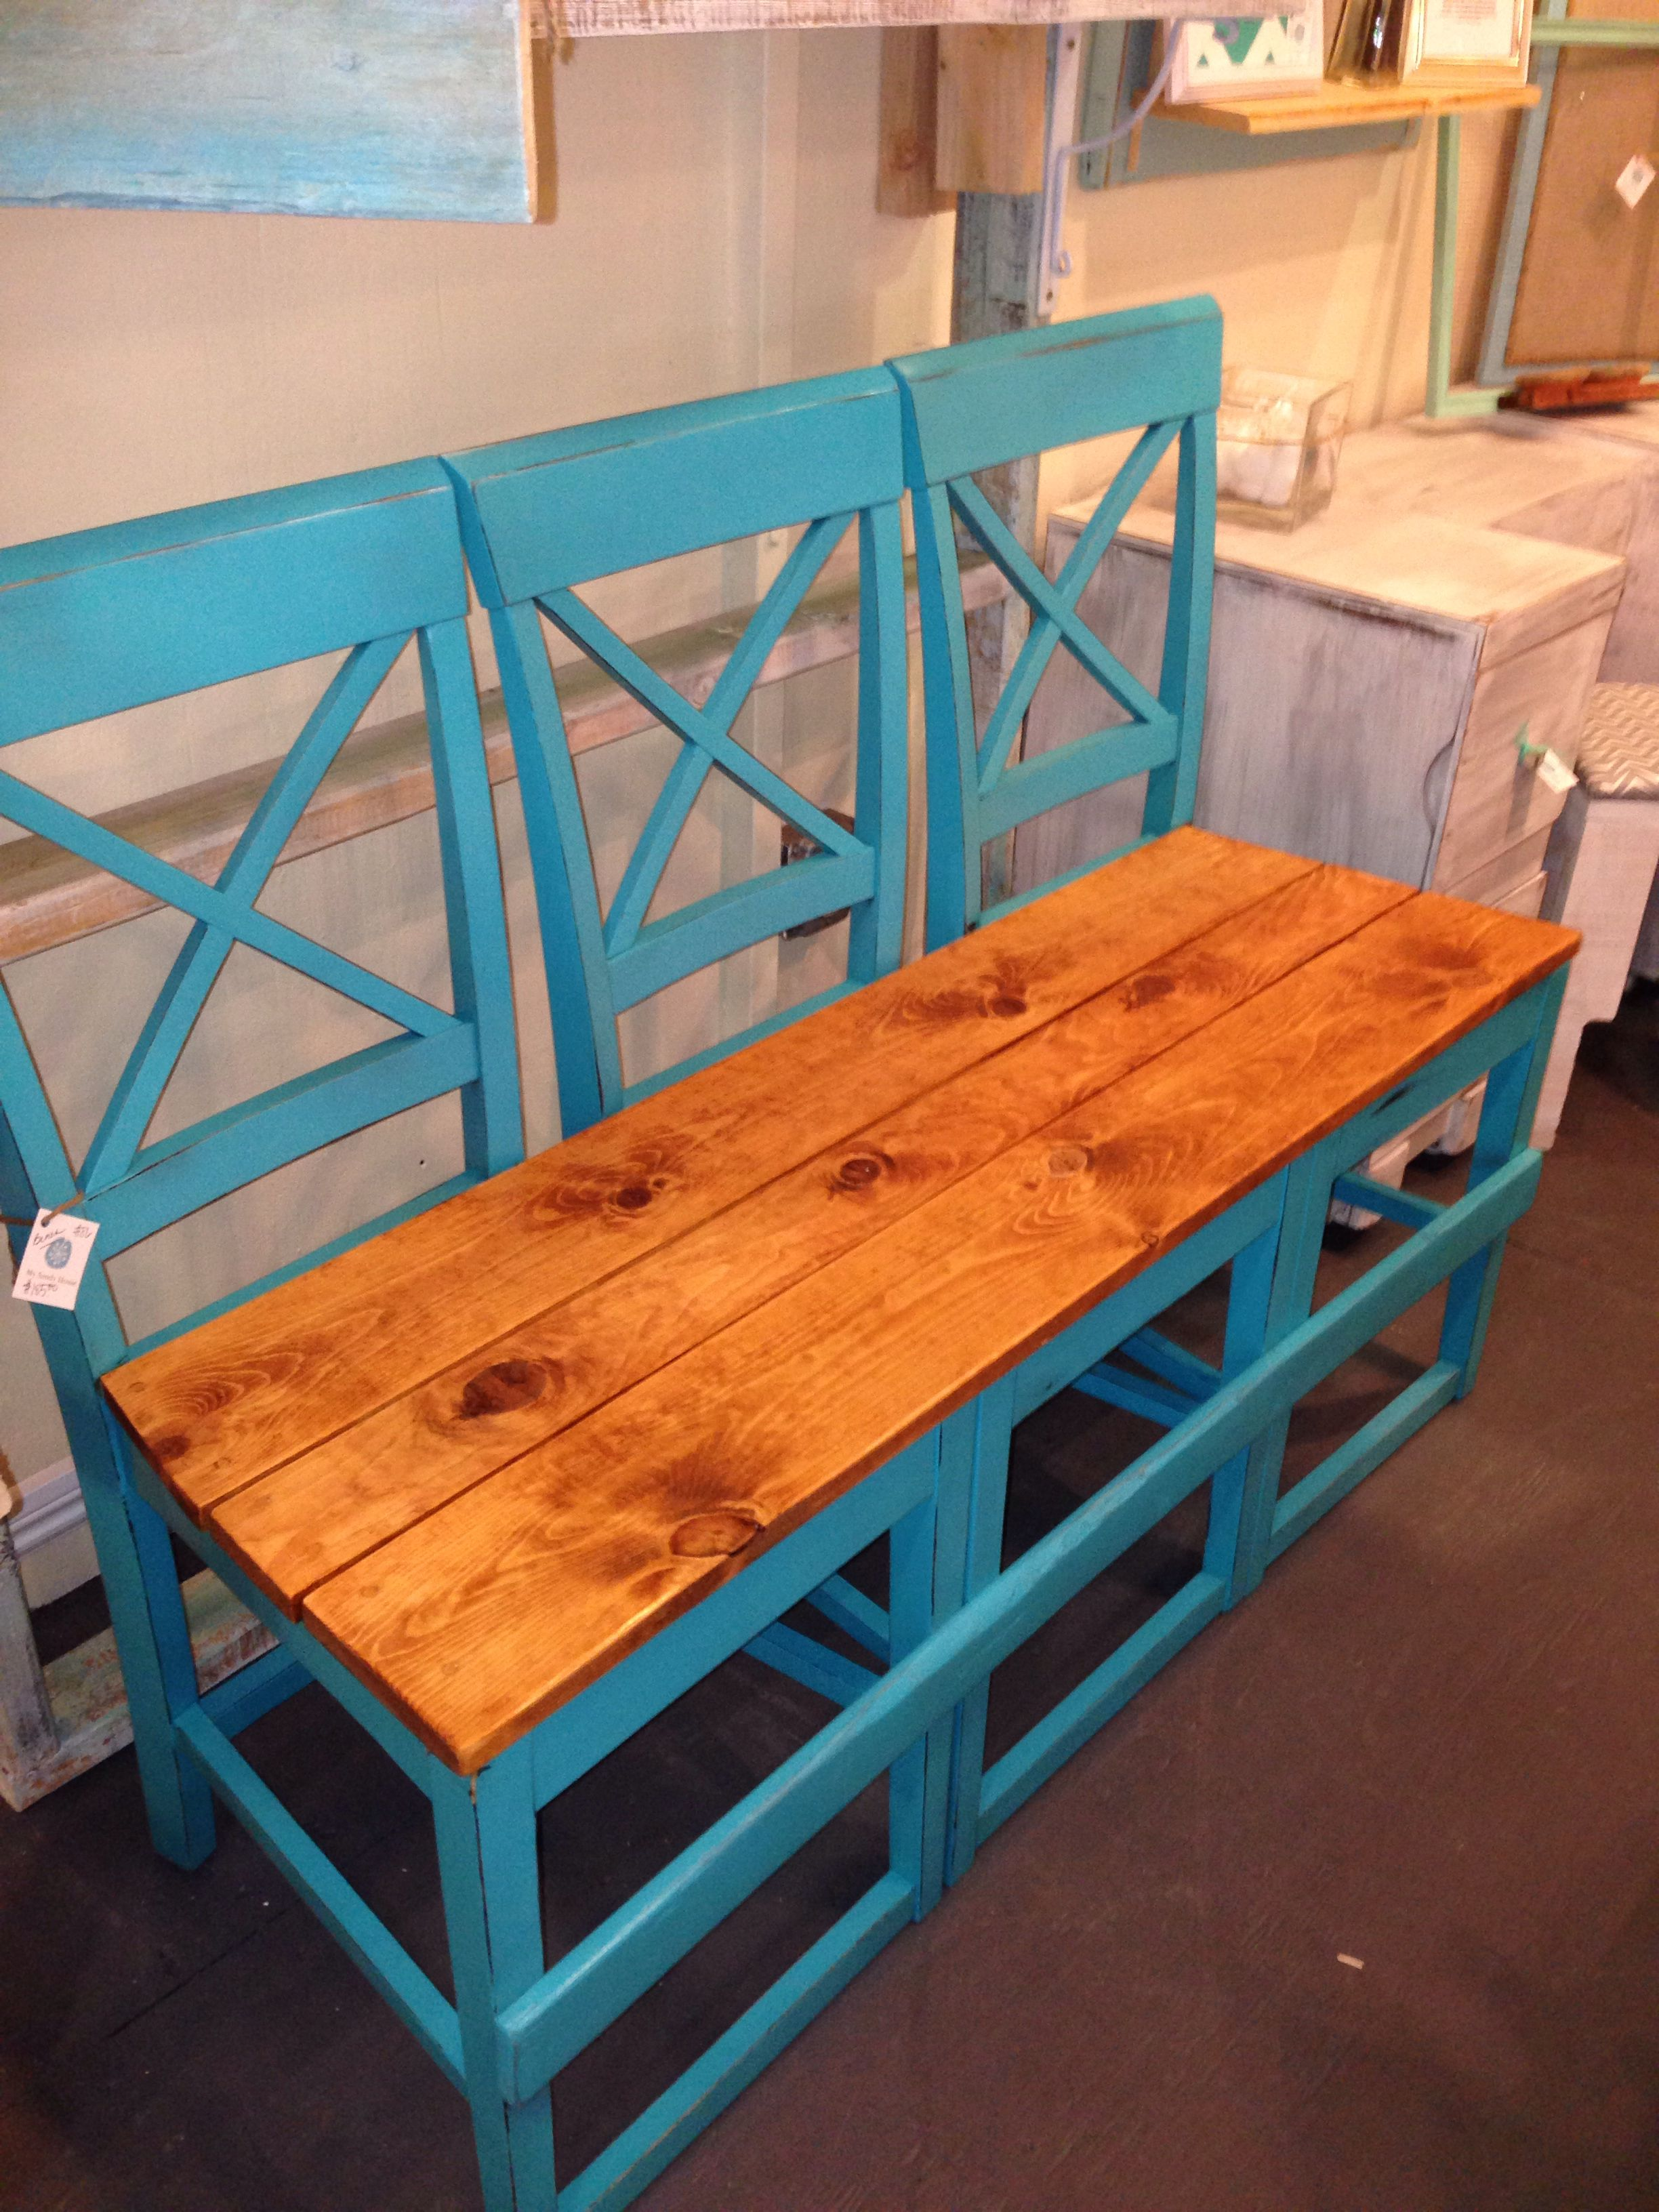 Chairs Made Into Bench By My Sandy House Www Mysandyhouse Com Repurposed Furniture Diy Pallet Furniture Upcycled Furniture